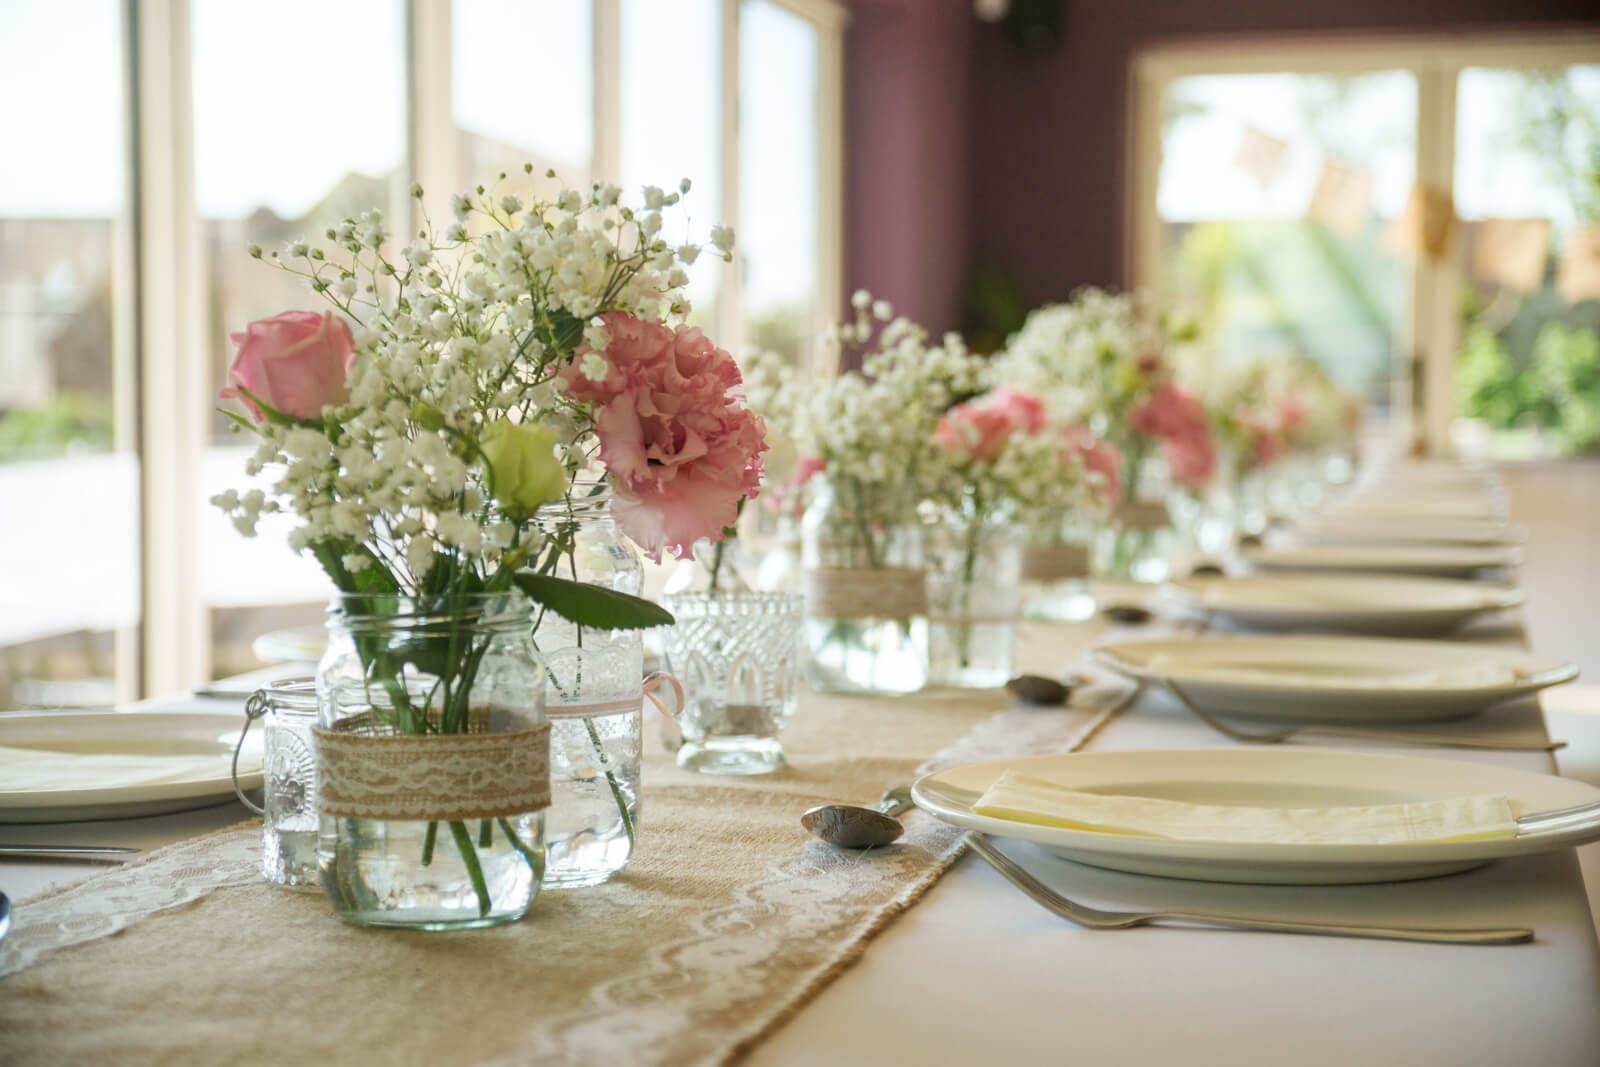 Table set with pink and white flowers, burlap and hessian